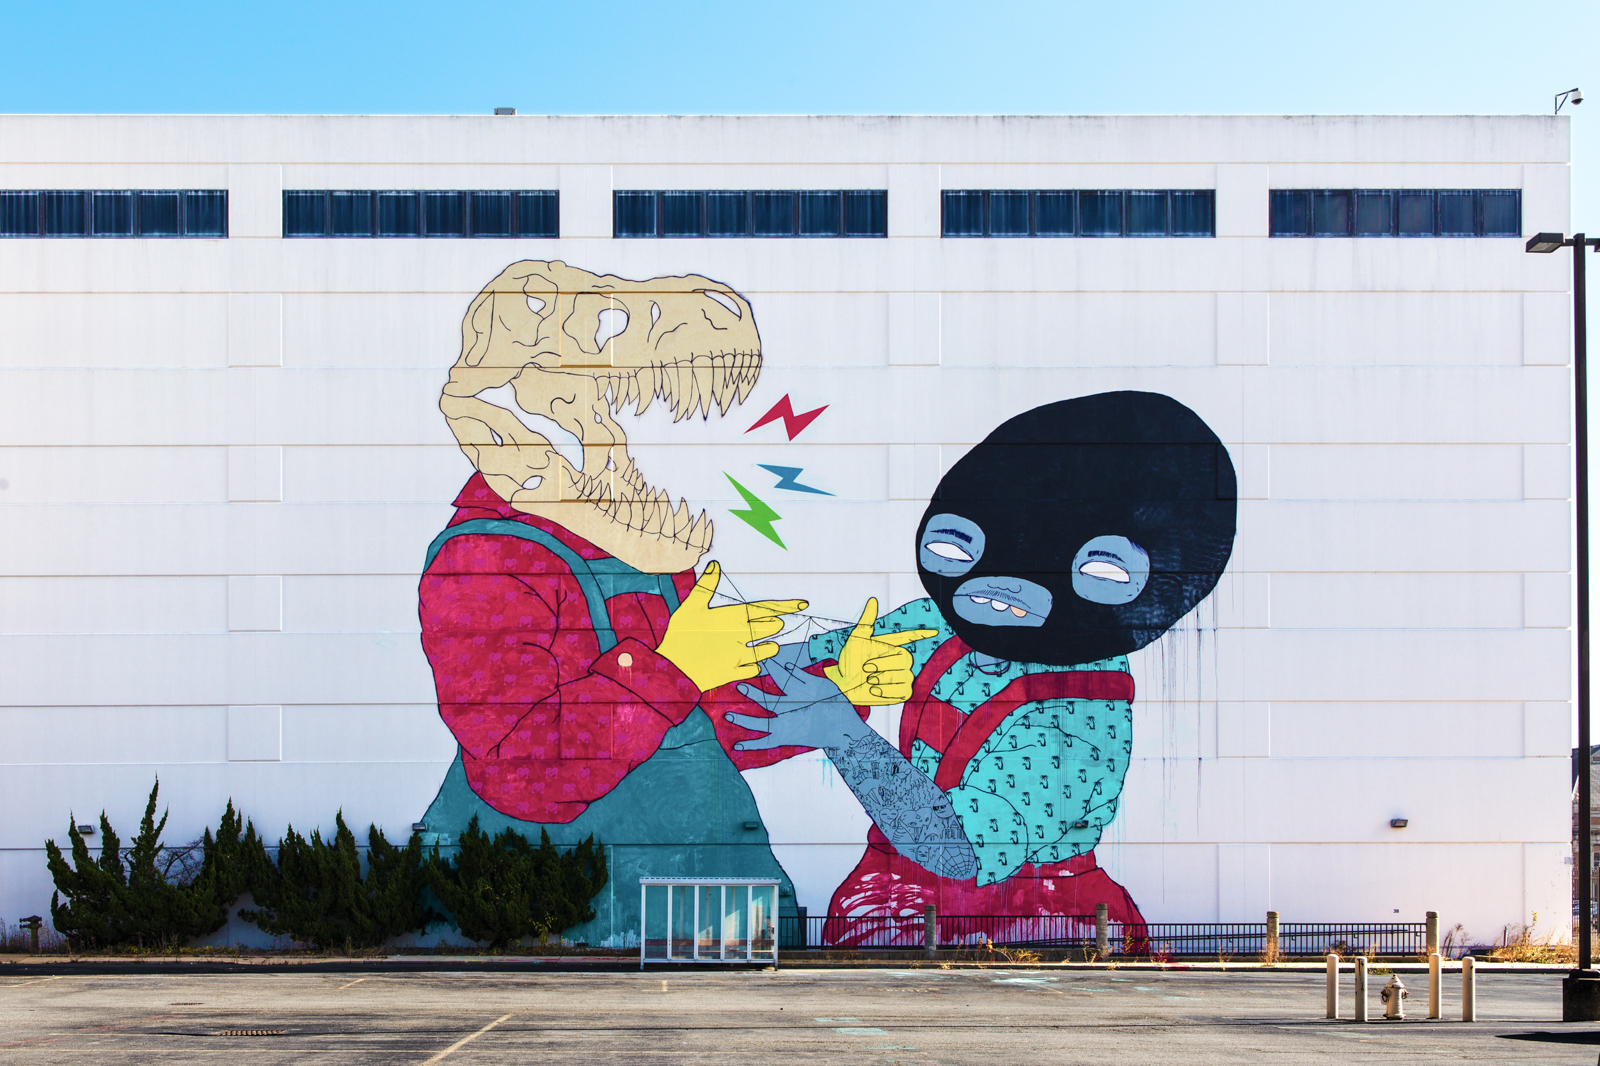 Photo of Jasper Wong and Kelly Towles collaboration mural from #ArtYardsDC Mural Project.